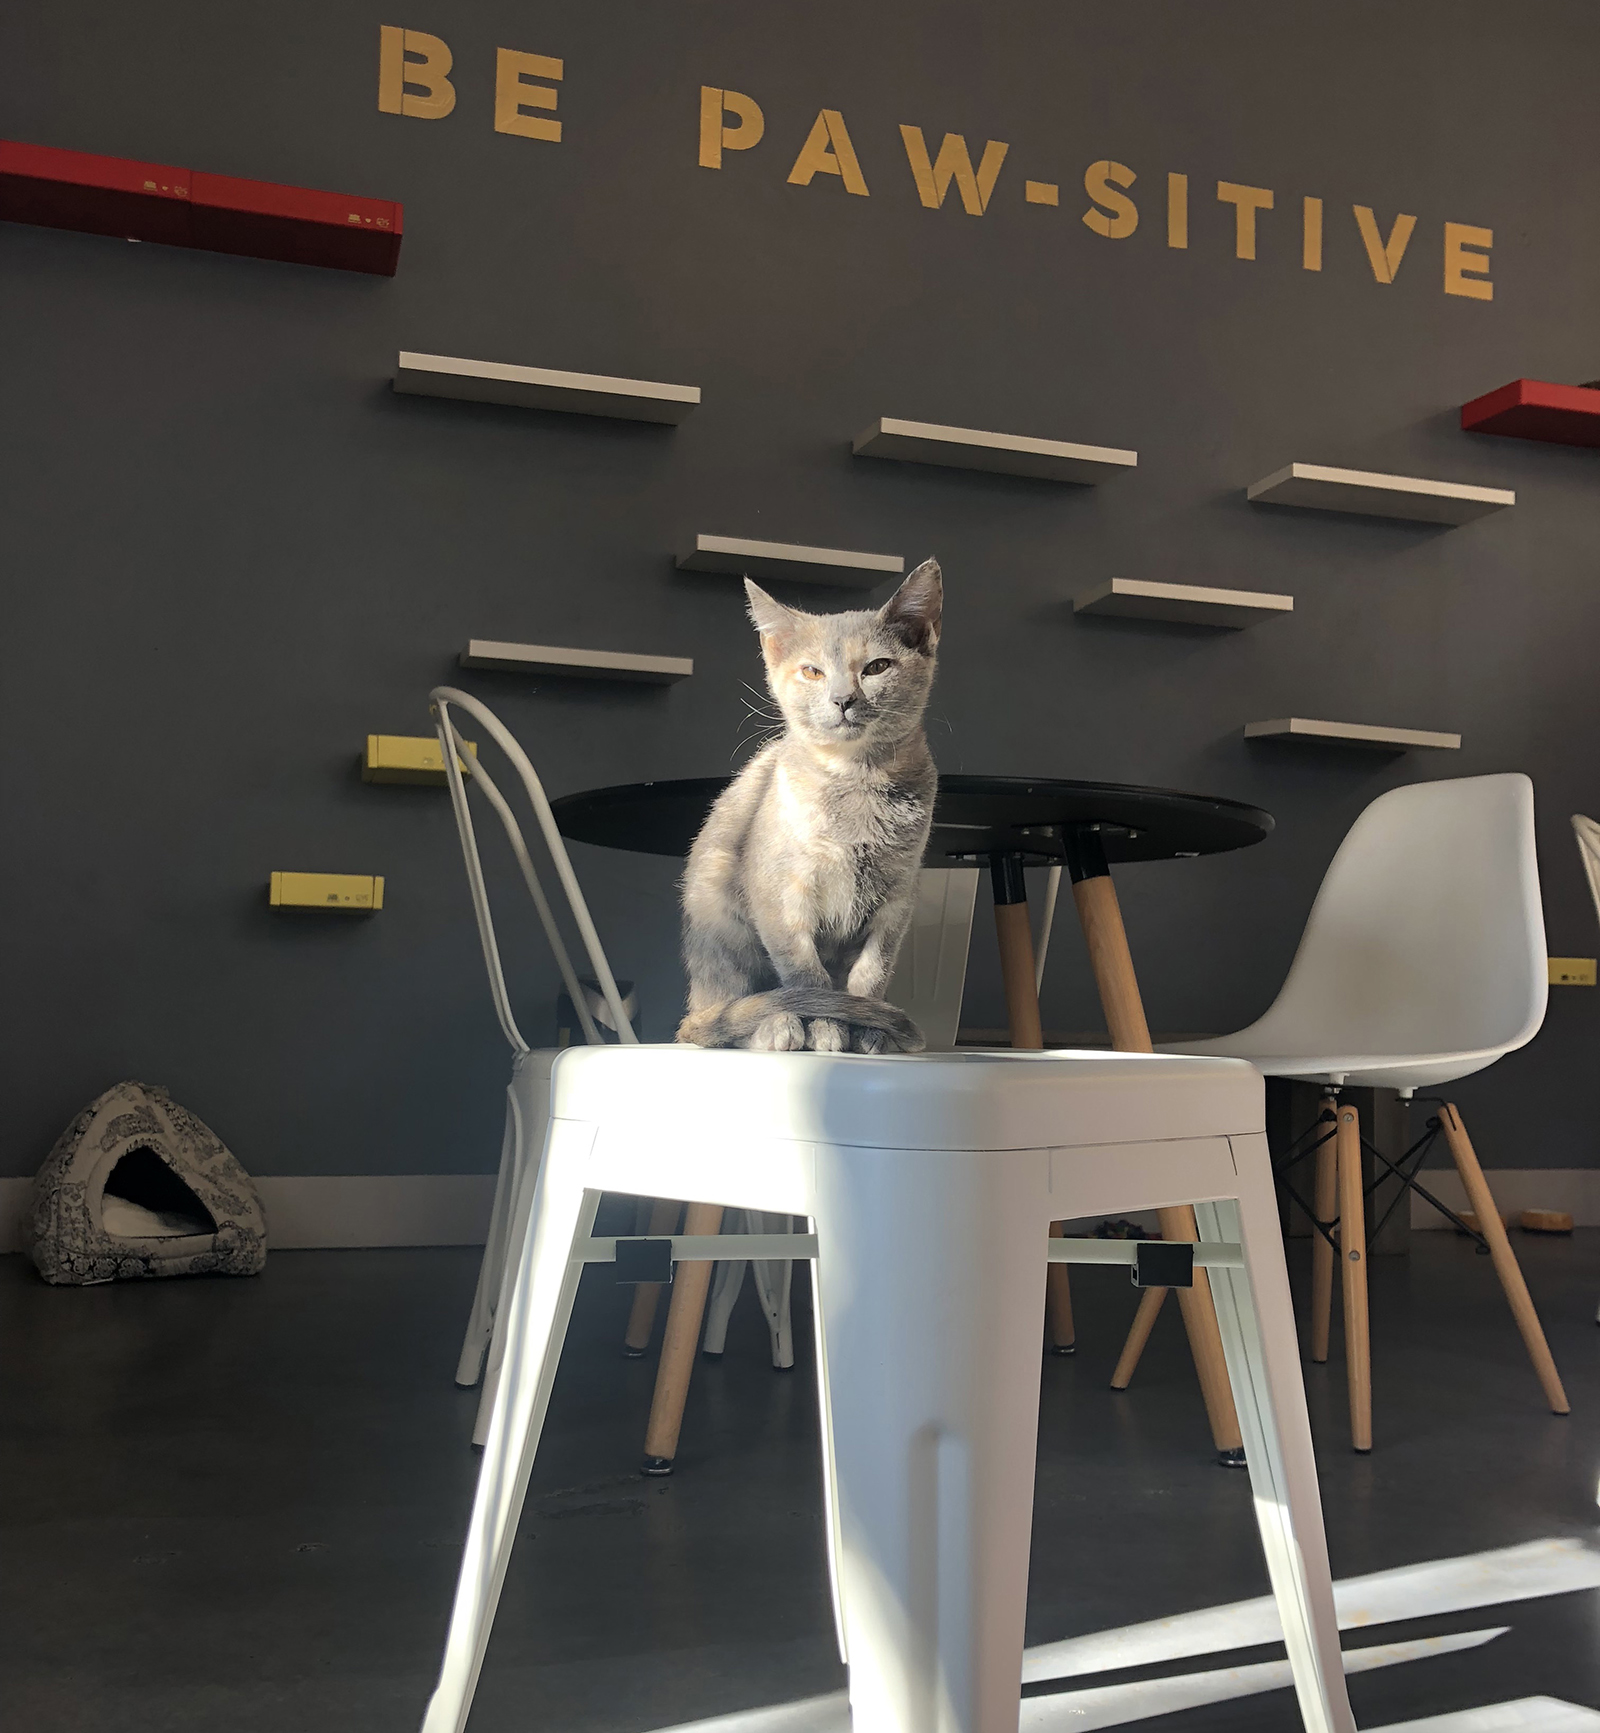 A cat perched on a stool at a cafe.